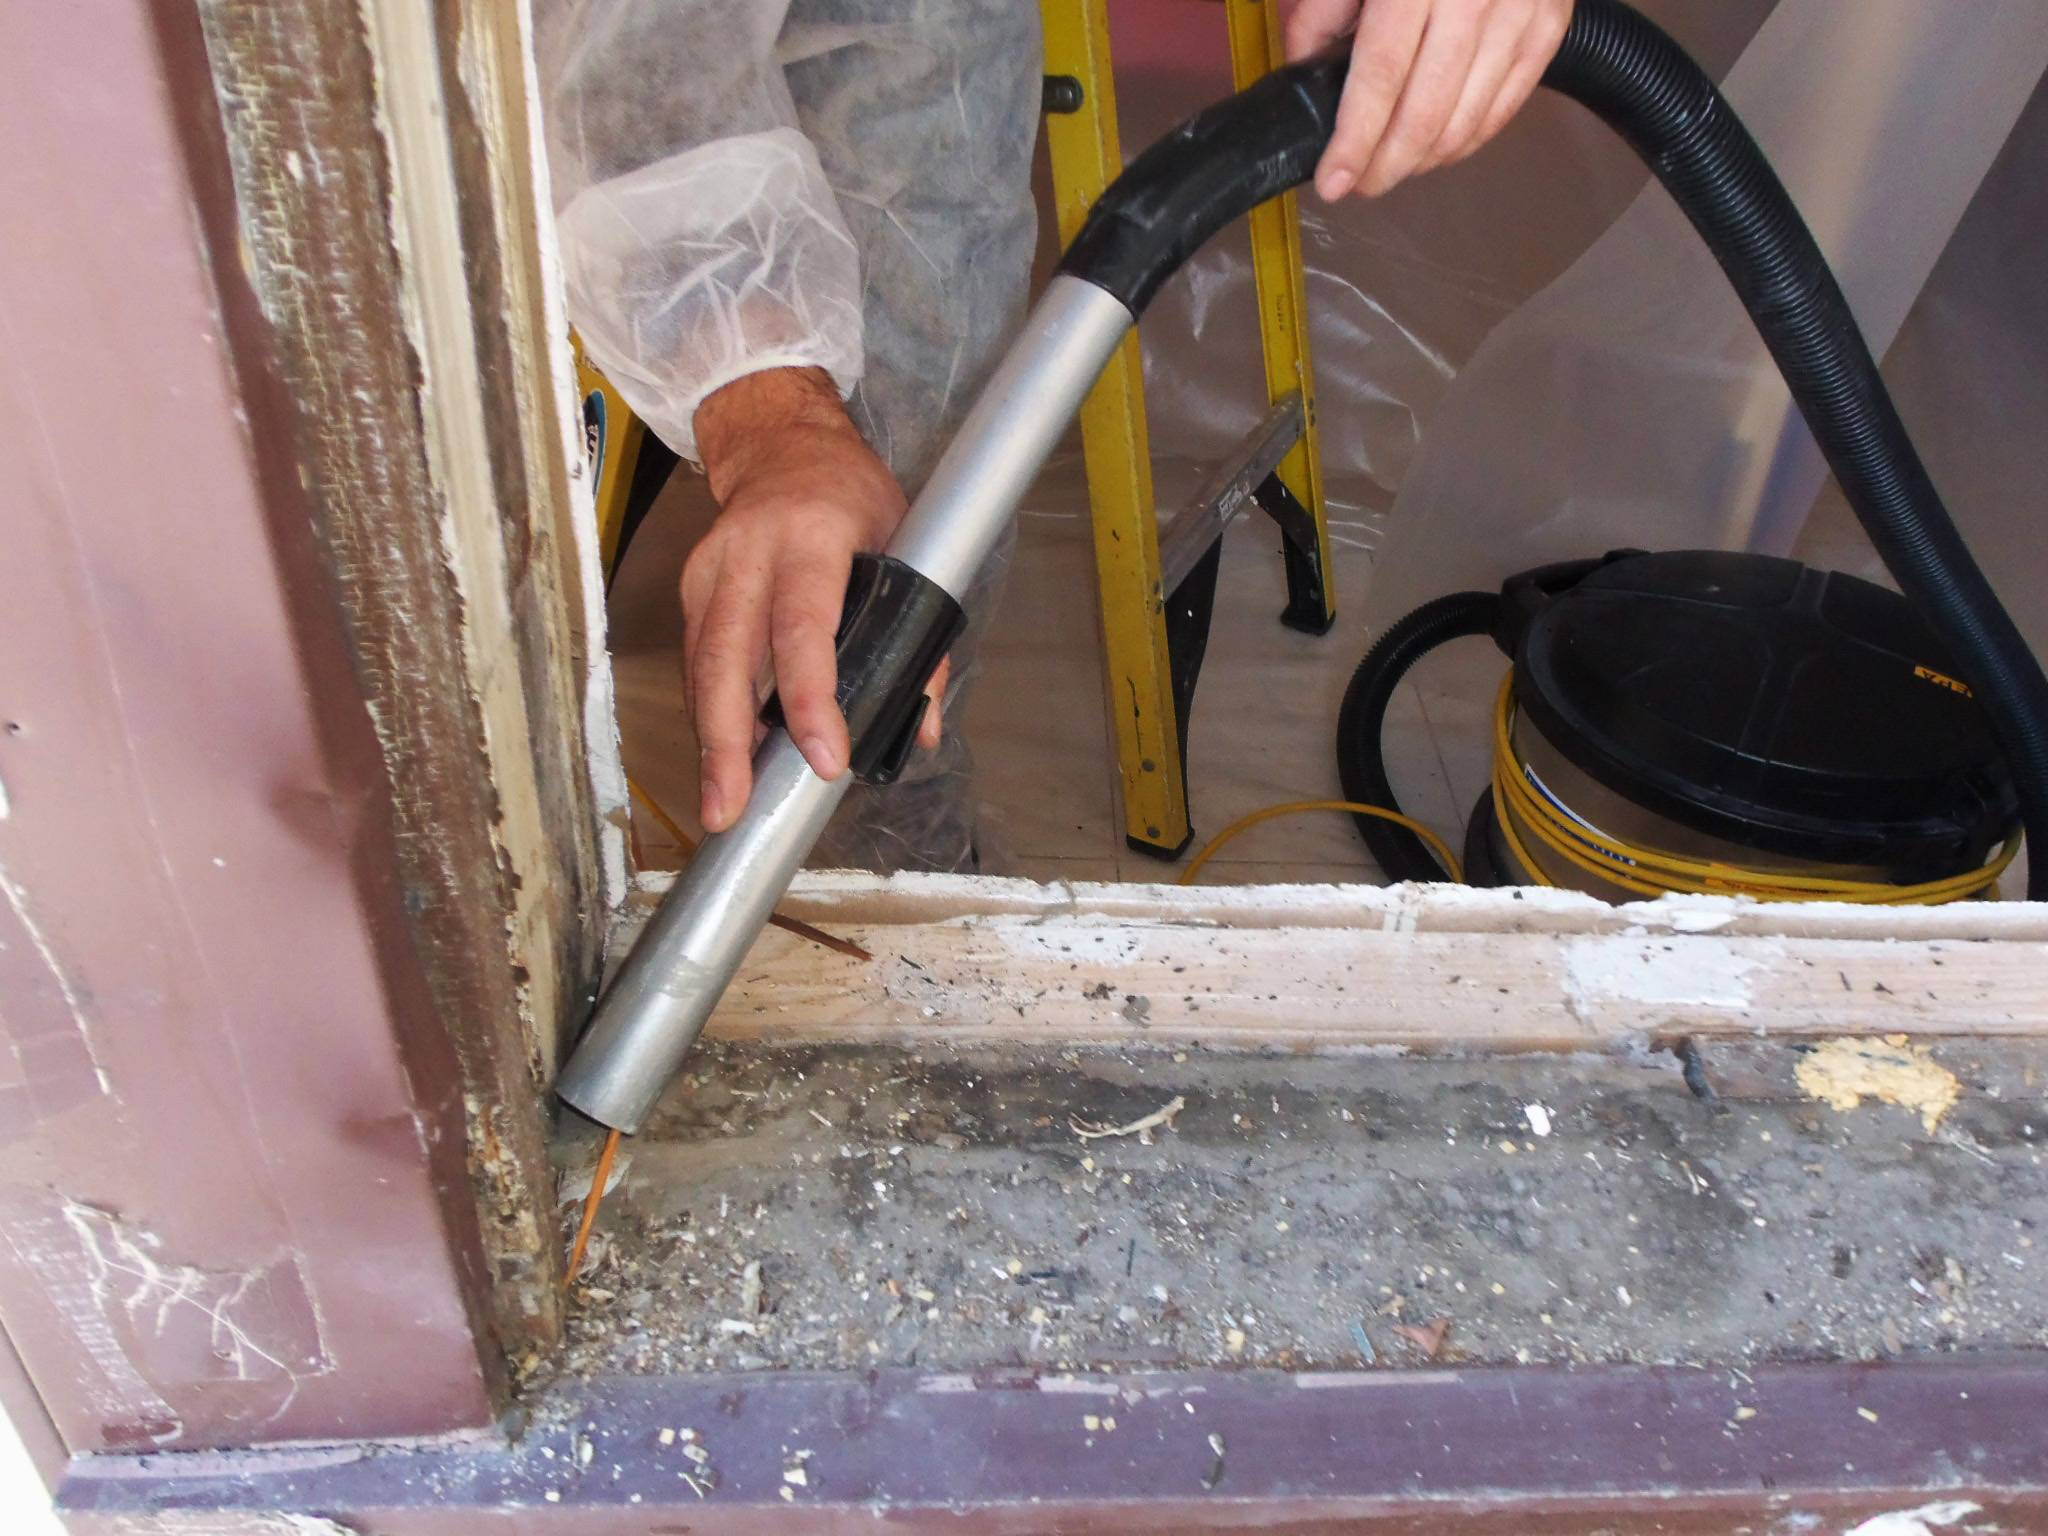 Windows and door frames are the most problematic contact points for lead paint. The frequent surface friction turns the paint into lead dust that is easily inhaled.